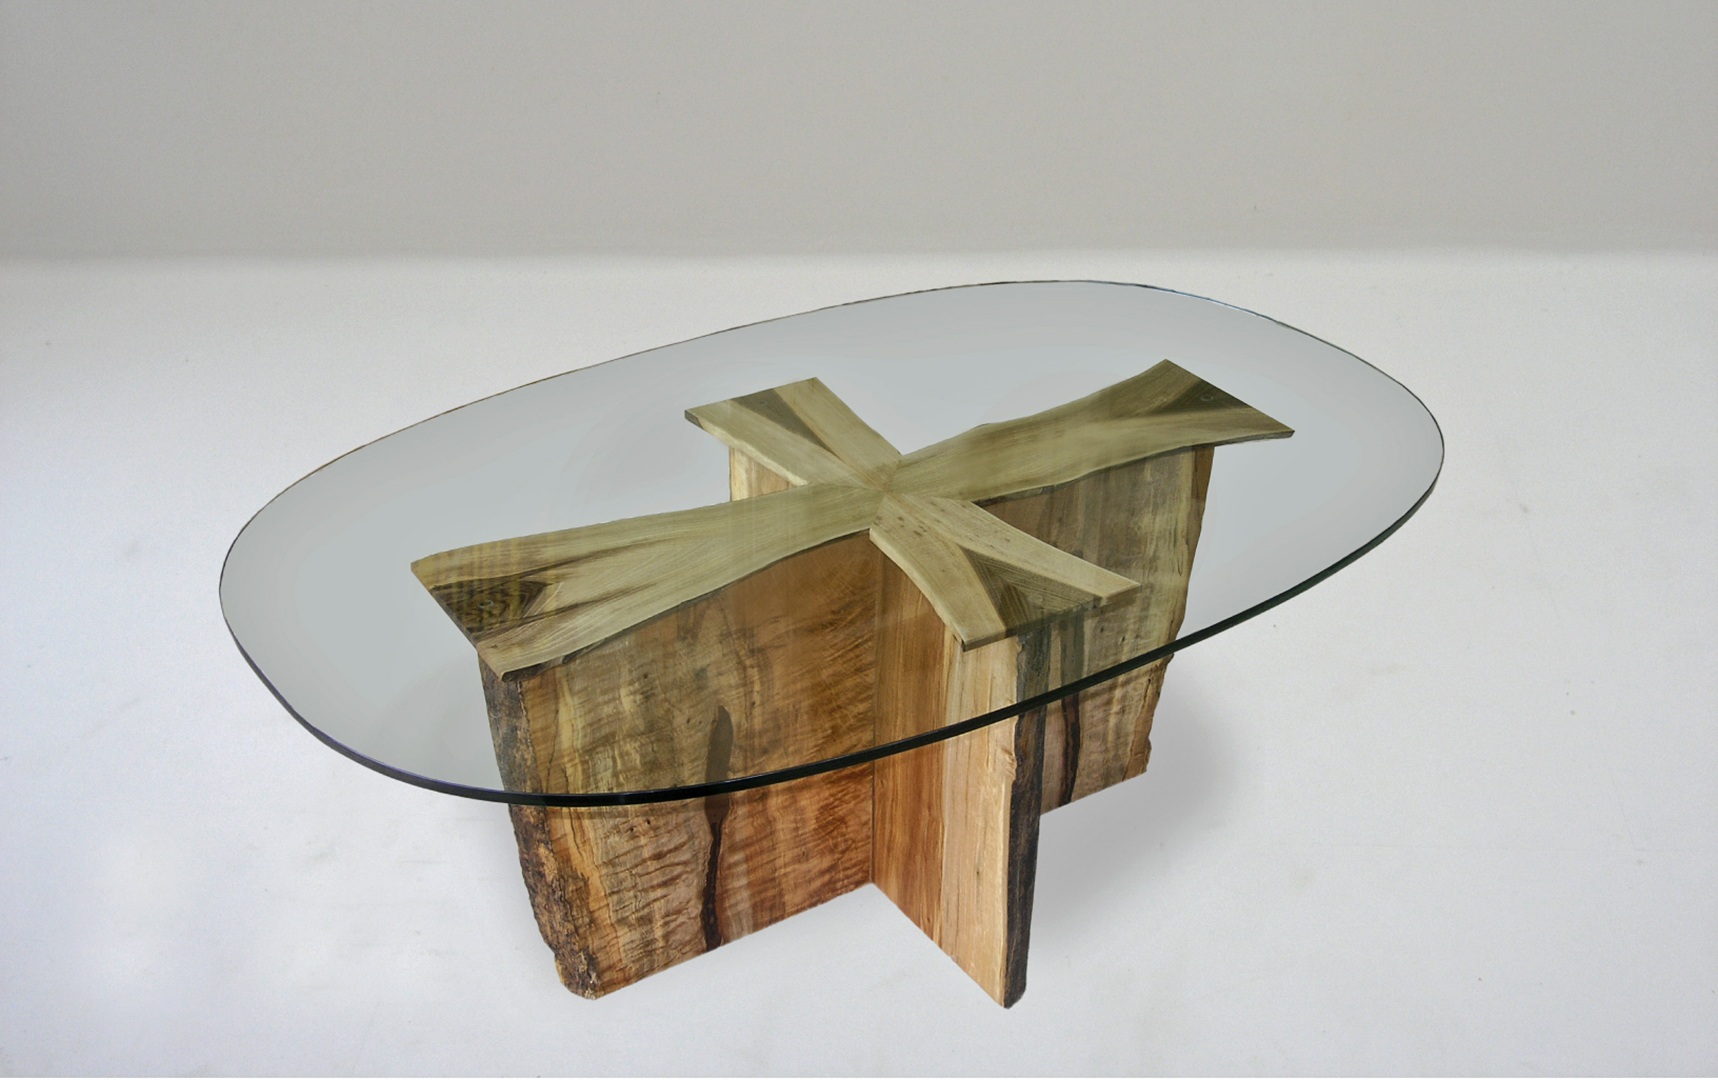 Mapleart custom wood furniture vancouver bccherry for Coffee tables vancouver canada